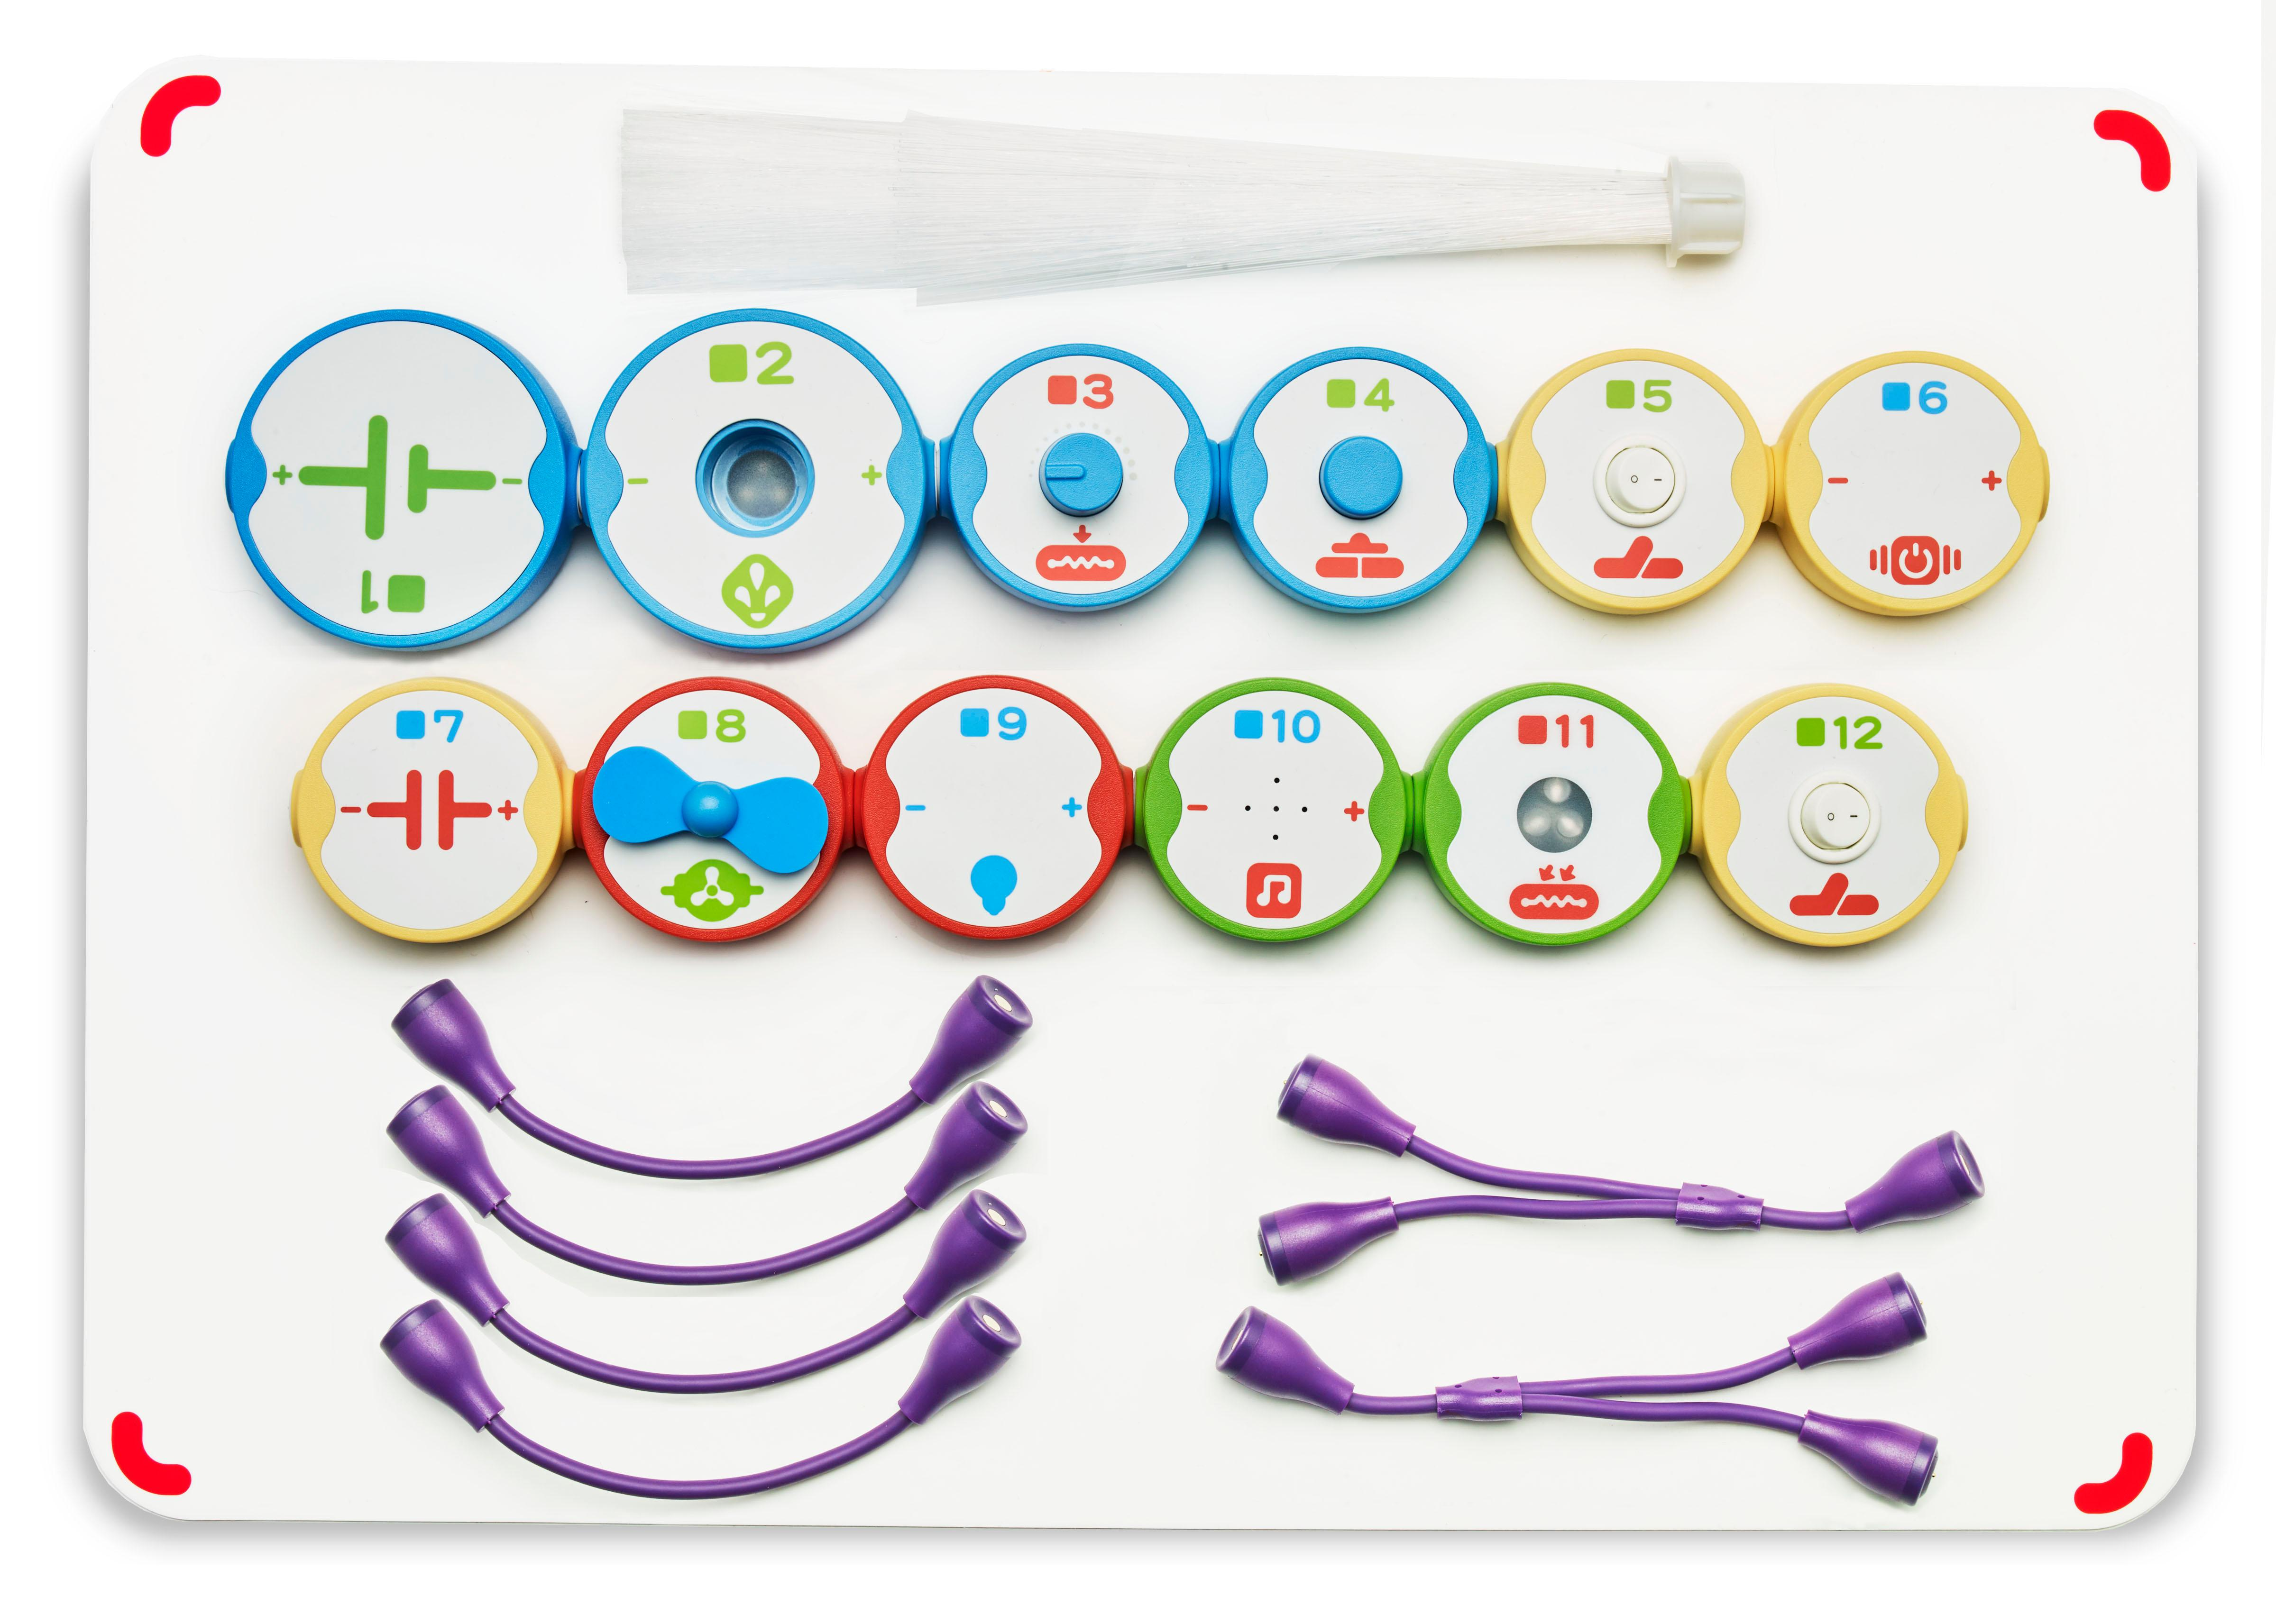 Pai Technology Circuit Conductor Electricity Learning And Circuits Complete Kit For Hours Of Fun